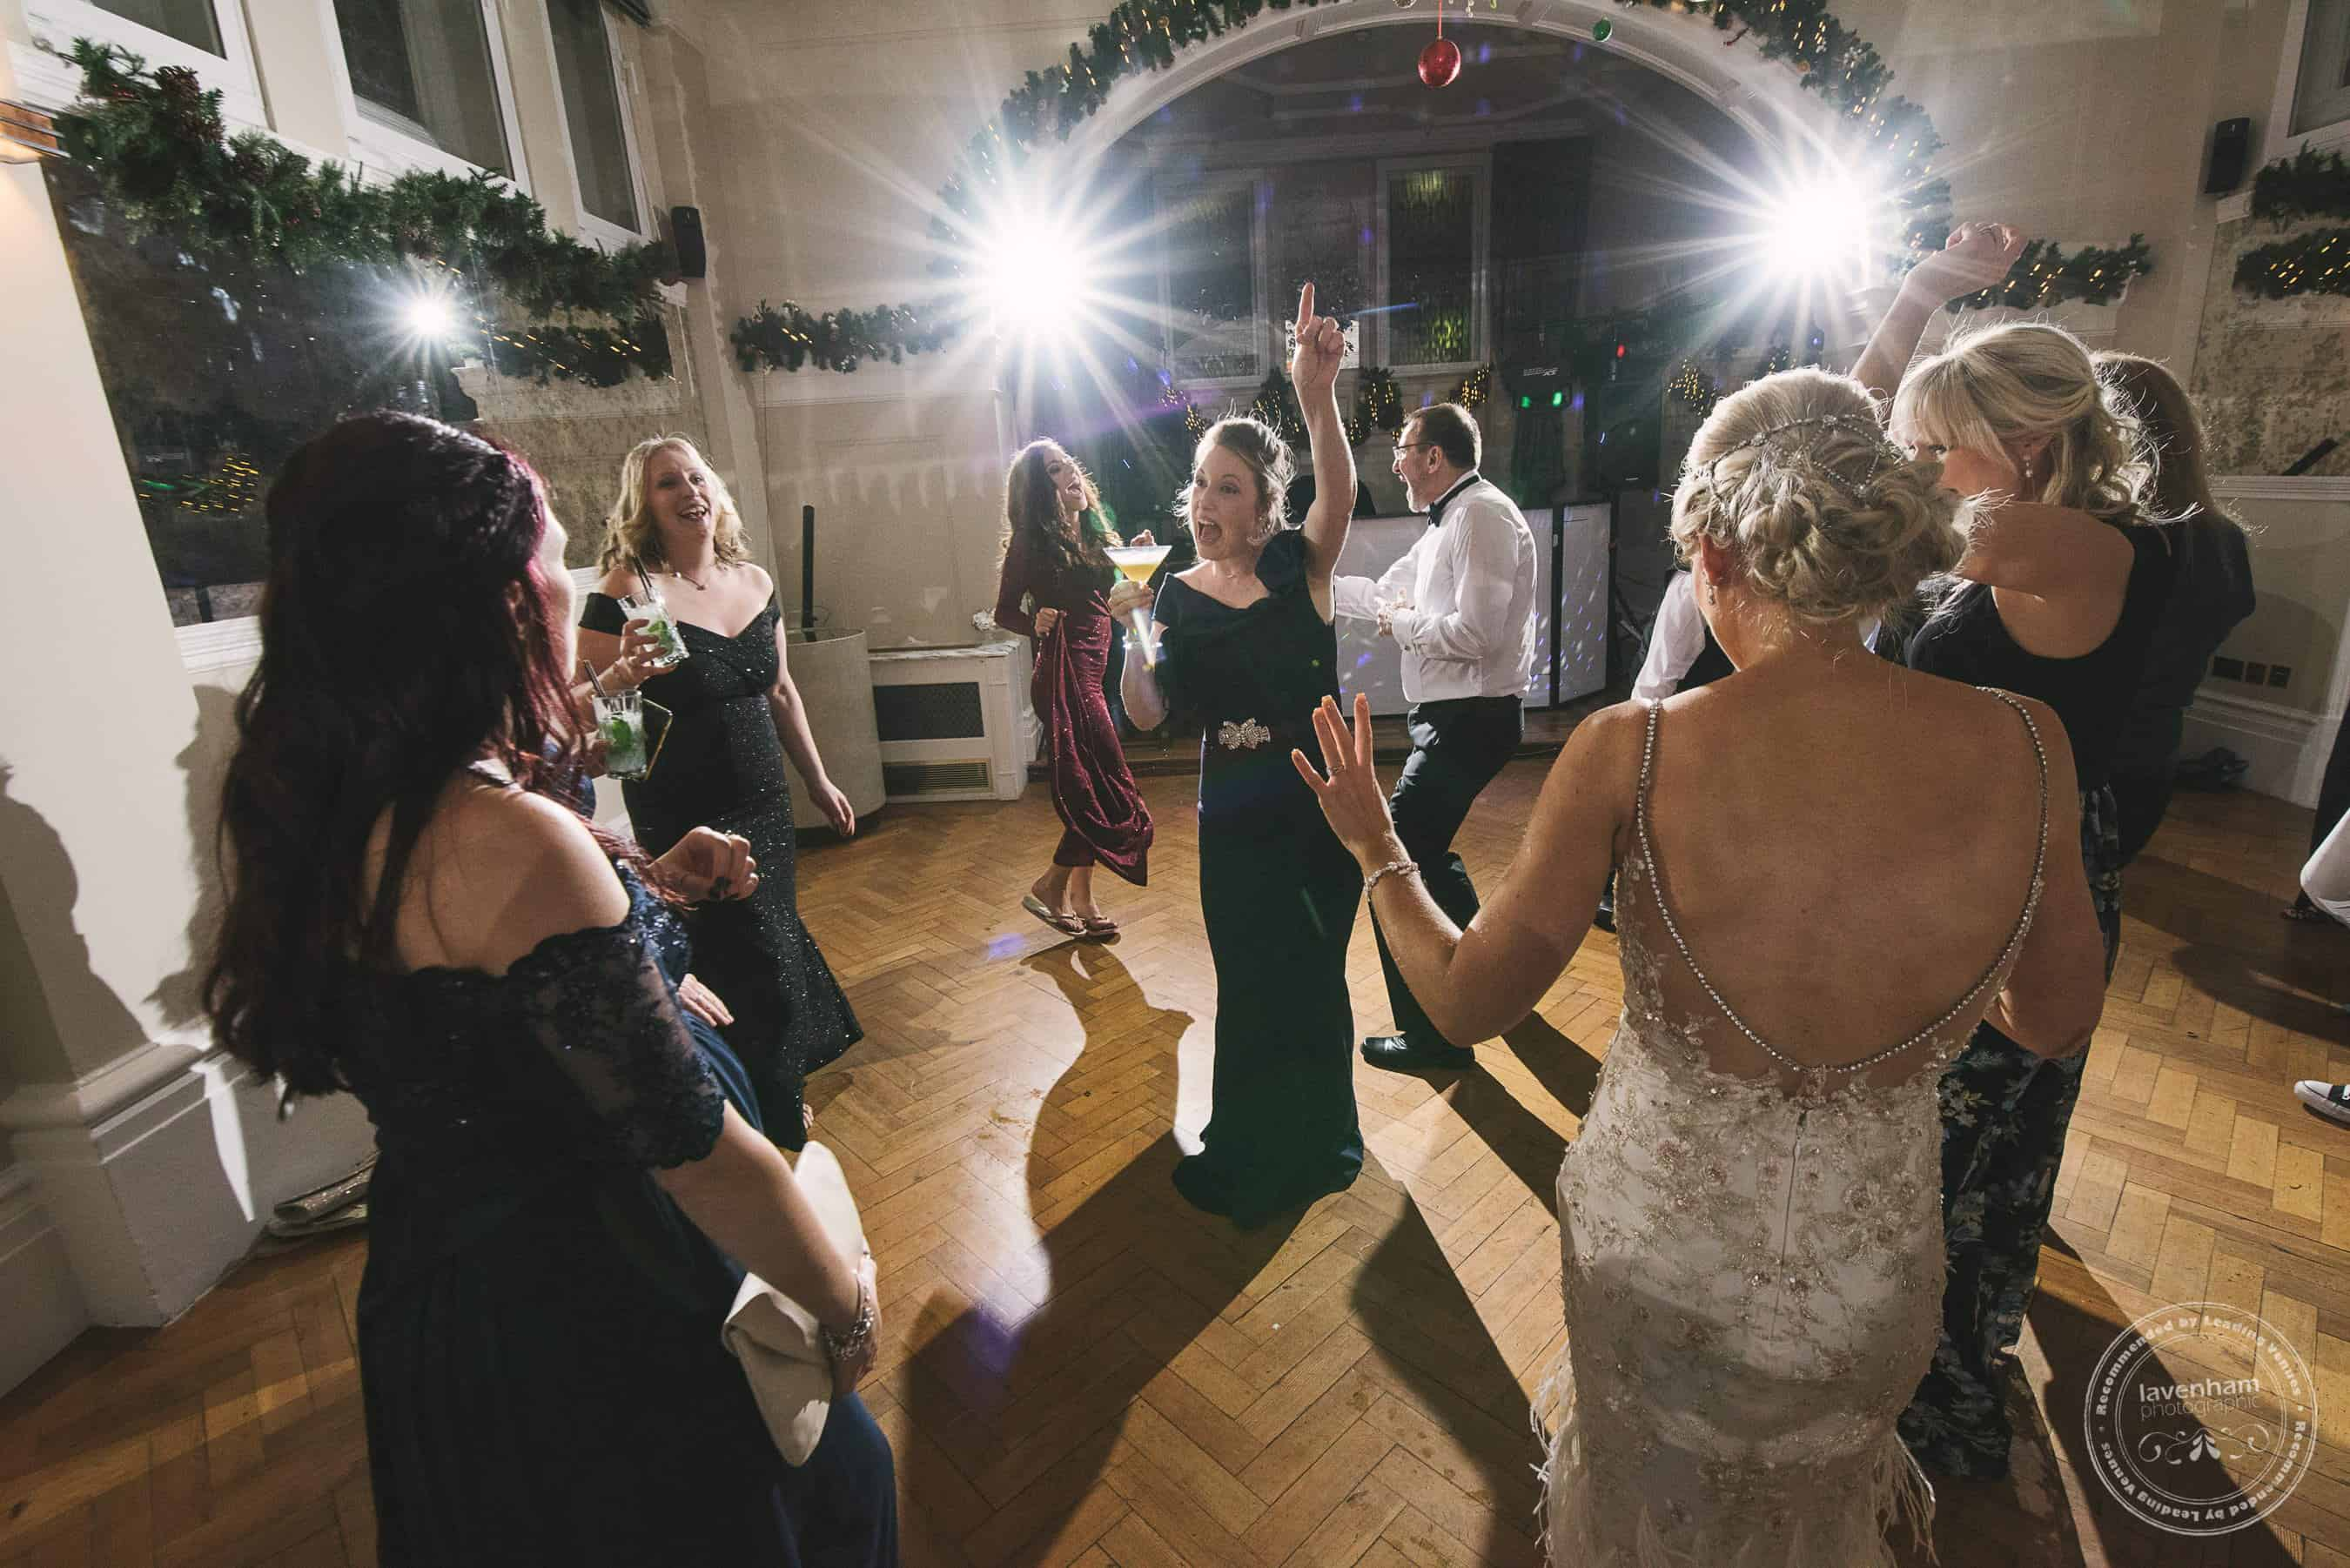 211218 Greyfriars Colchester Wedding Photography Essex Lavenham Photographic 100